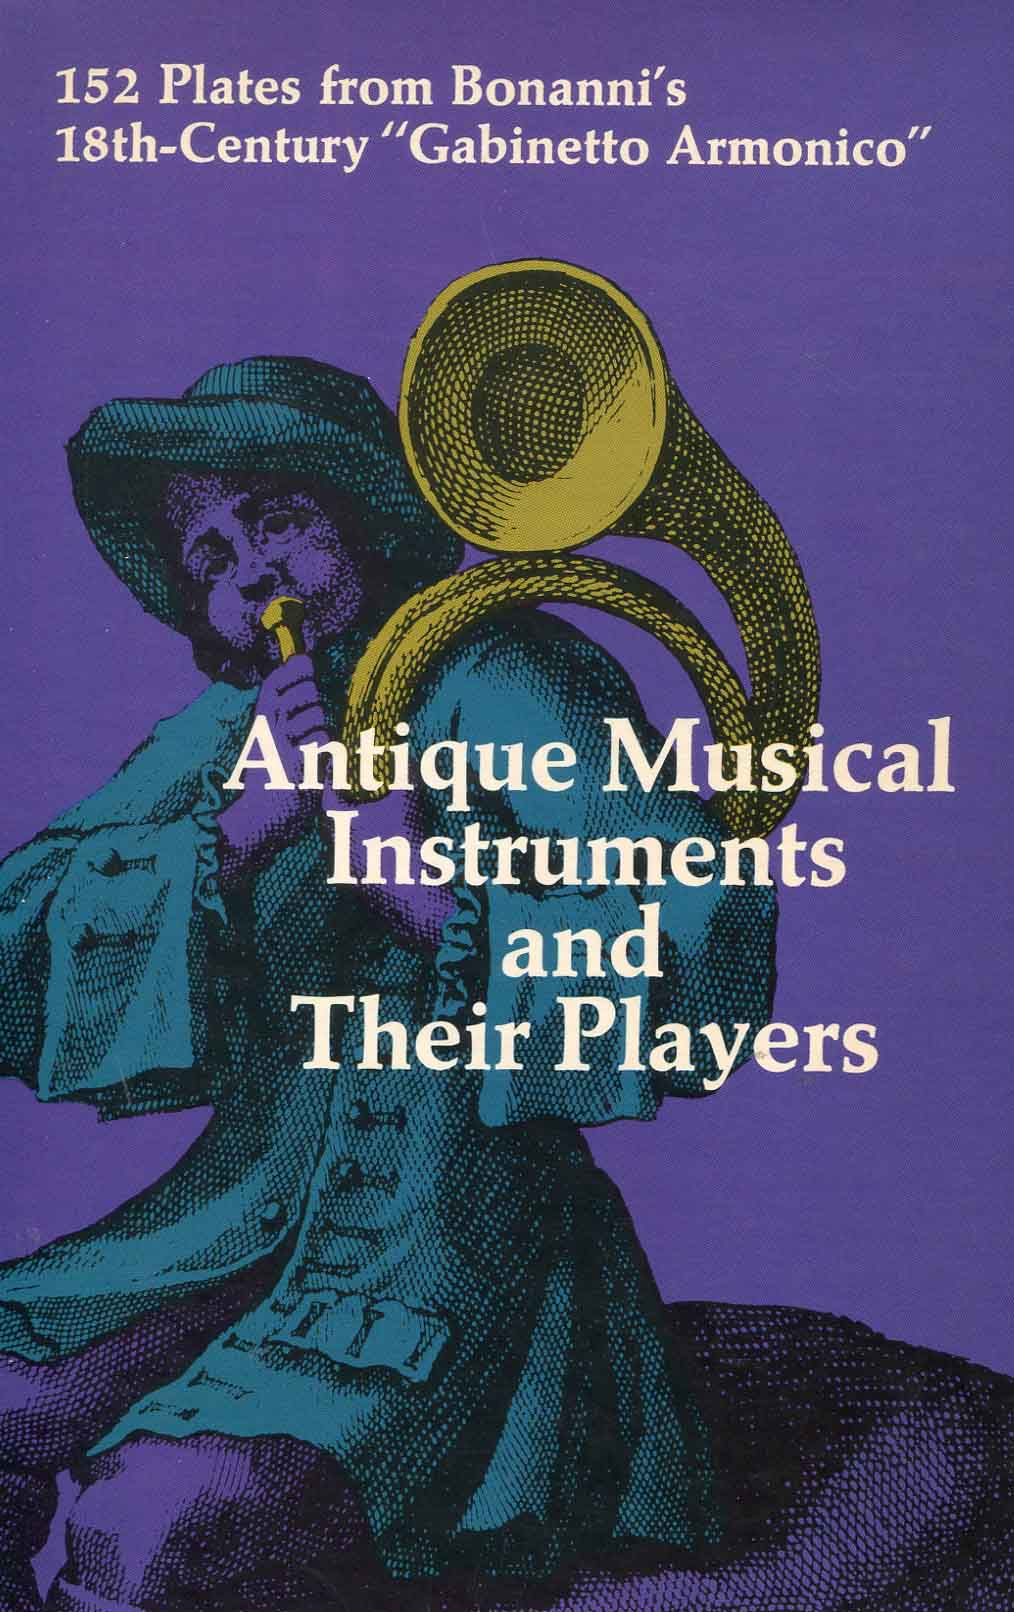 Antique musical instruments and their players : 152 plates from Bonanni